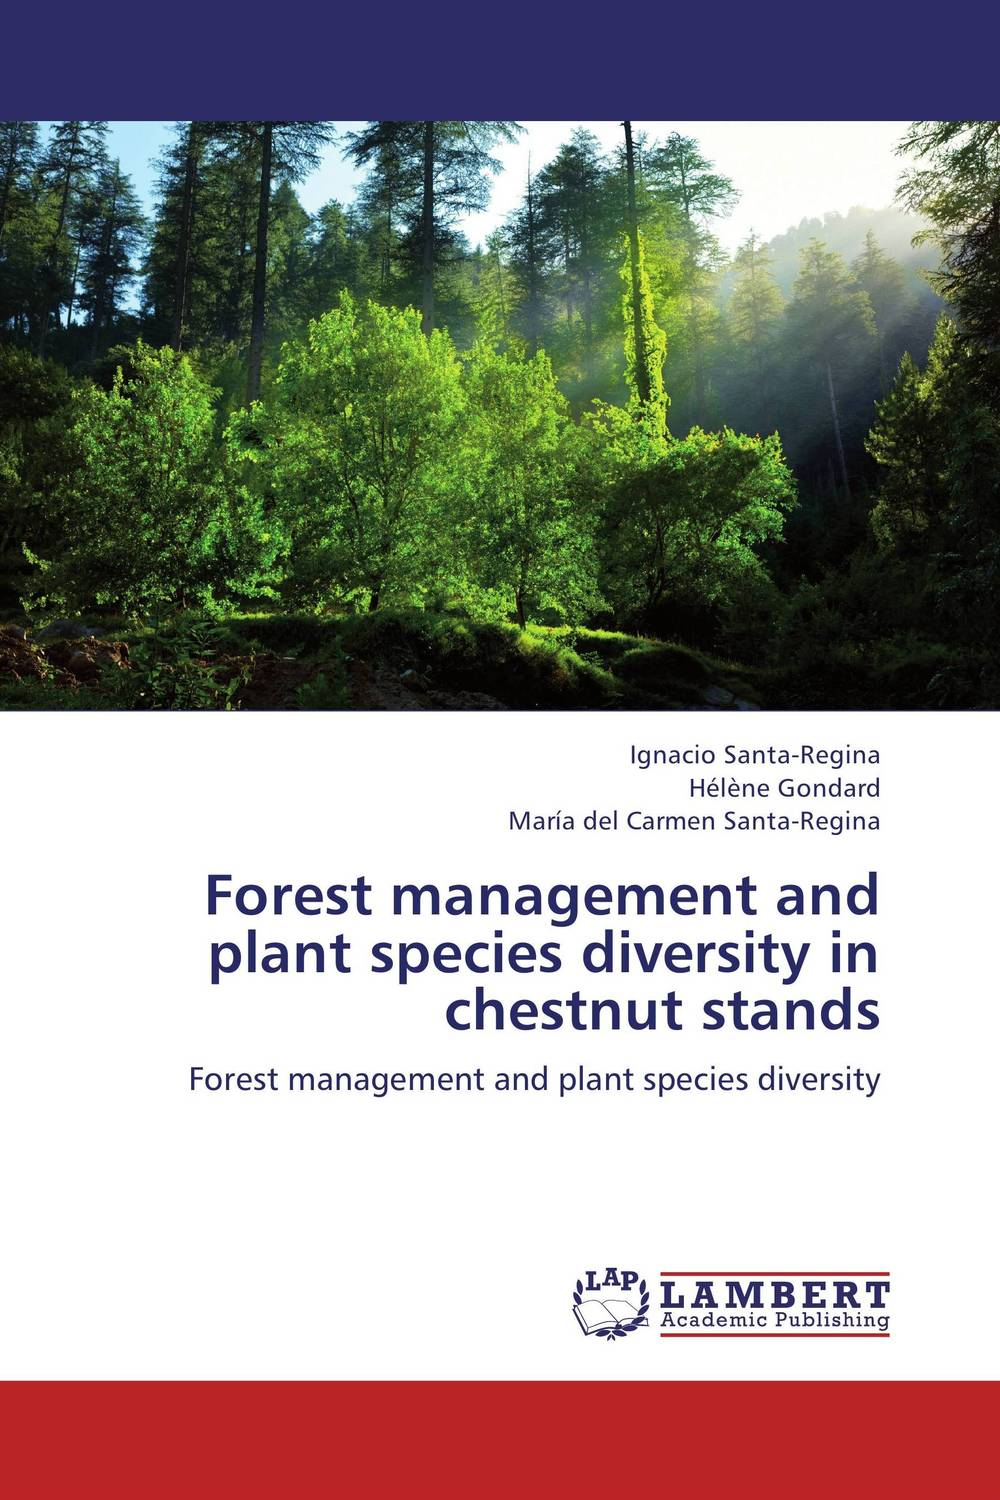 Forest management and plant species diversity in chestnut stands conflicts in forest resources usage and management